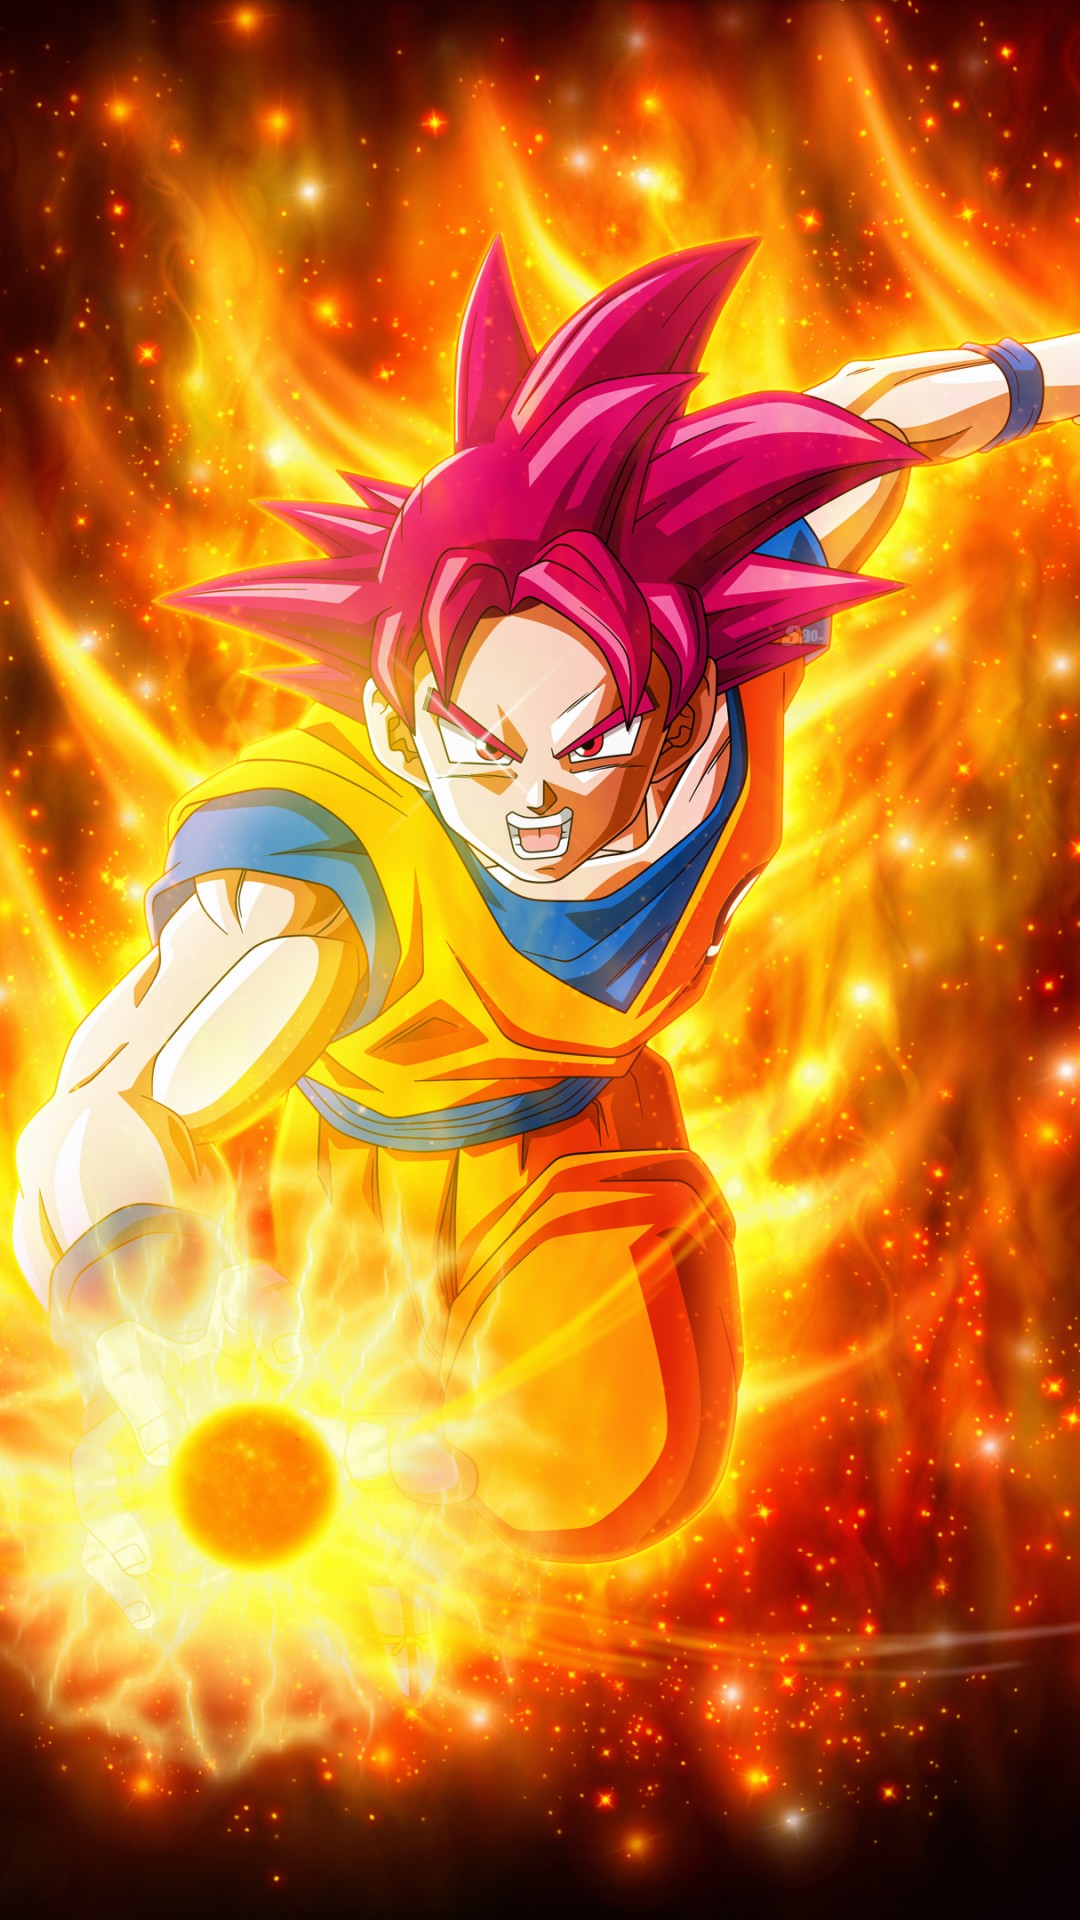 Super Saiyan Goku Dragon Ball Super Super 4k Iphone Iphone Dragon Ball Wallpaper 4k 2987558 Hd Wallpaper Backgrounds Download